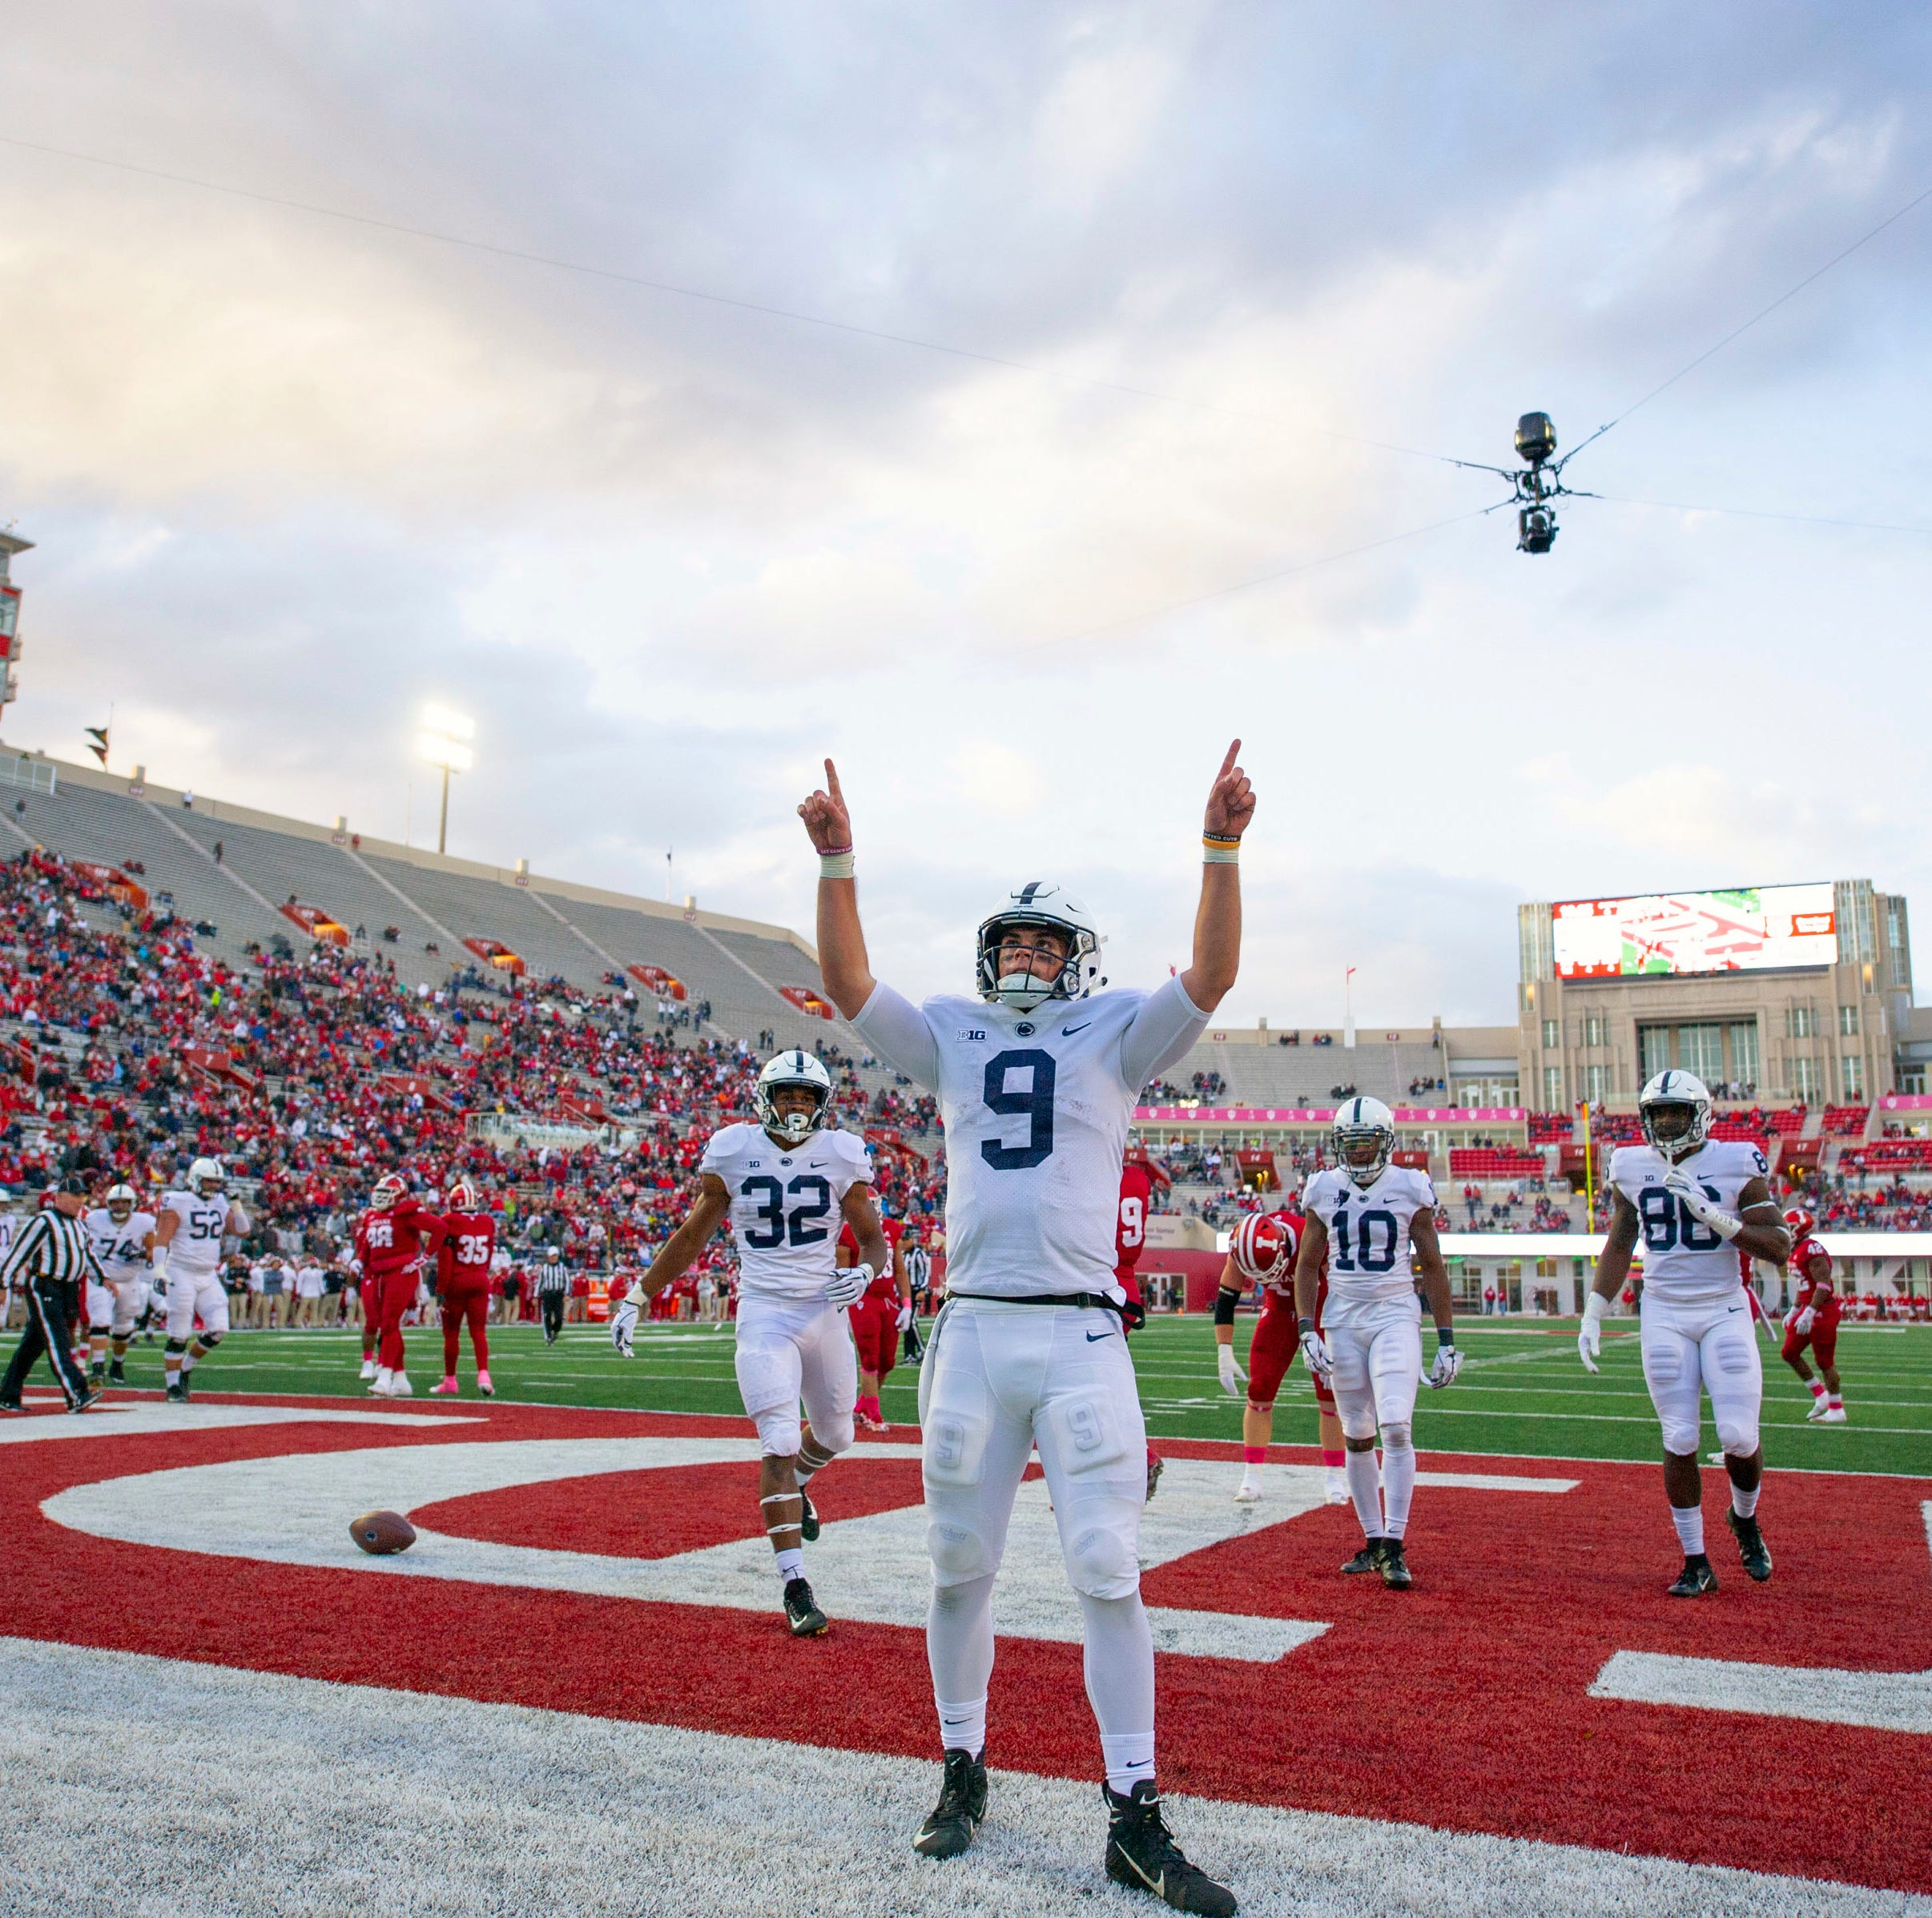 Penn State's Trace McSorley gives new meaning to 'can't touch this' in these highlights